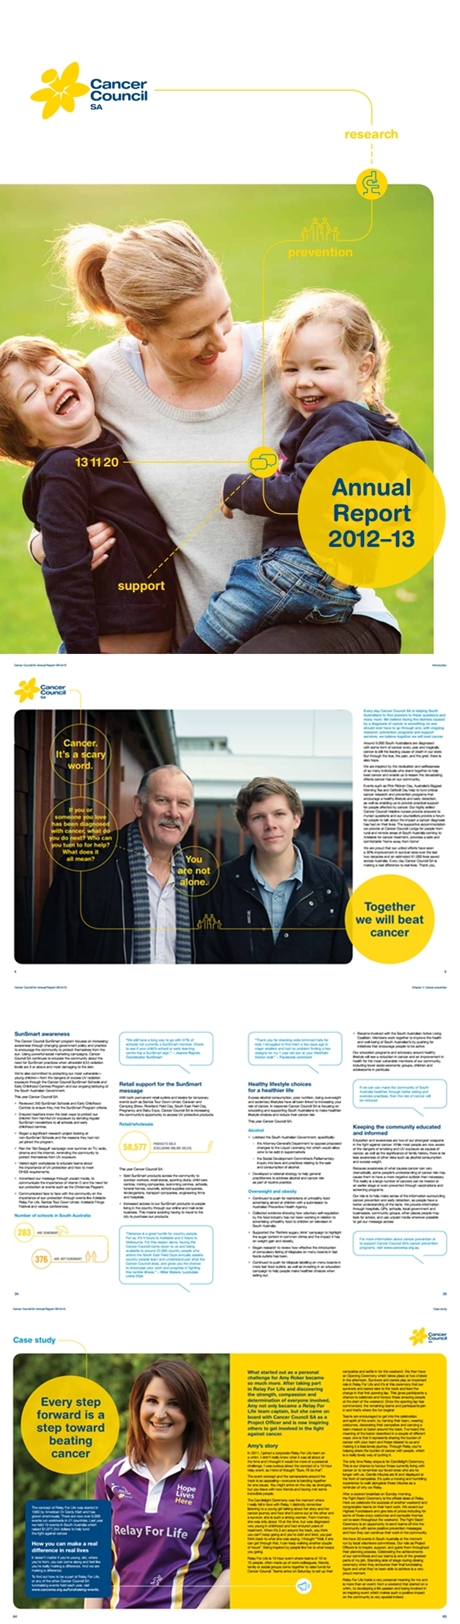 Annual Report Cancer Council SA